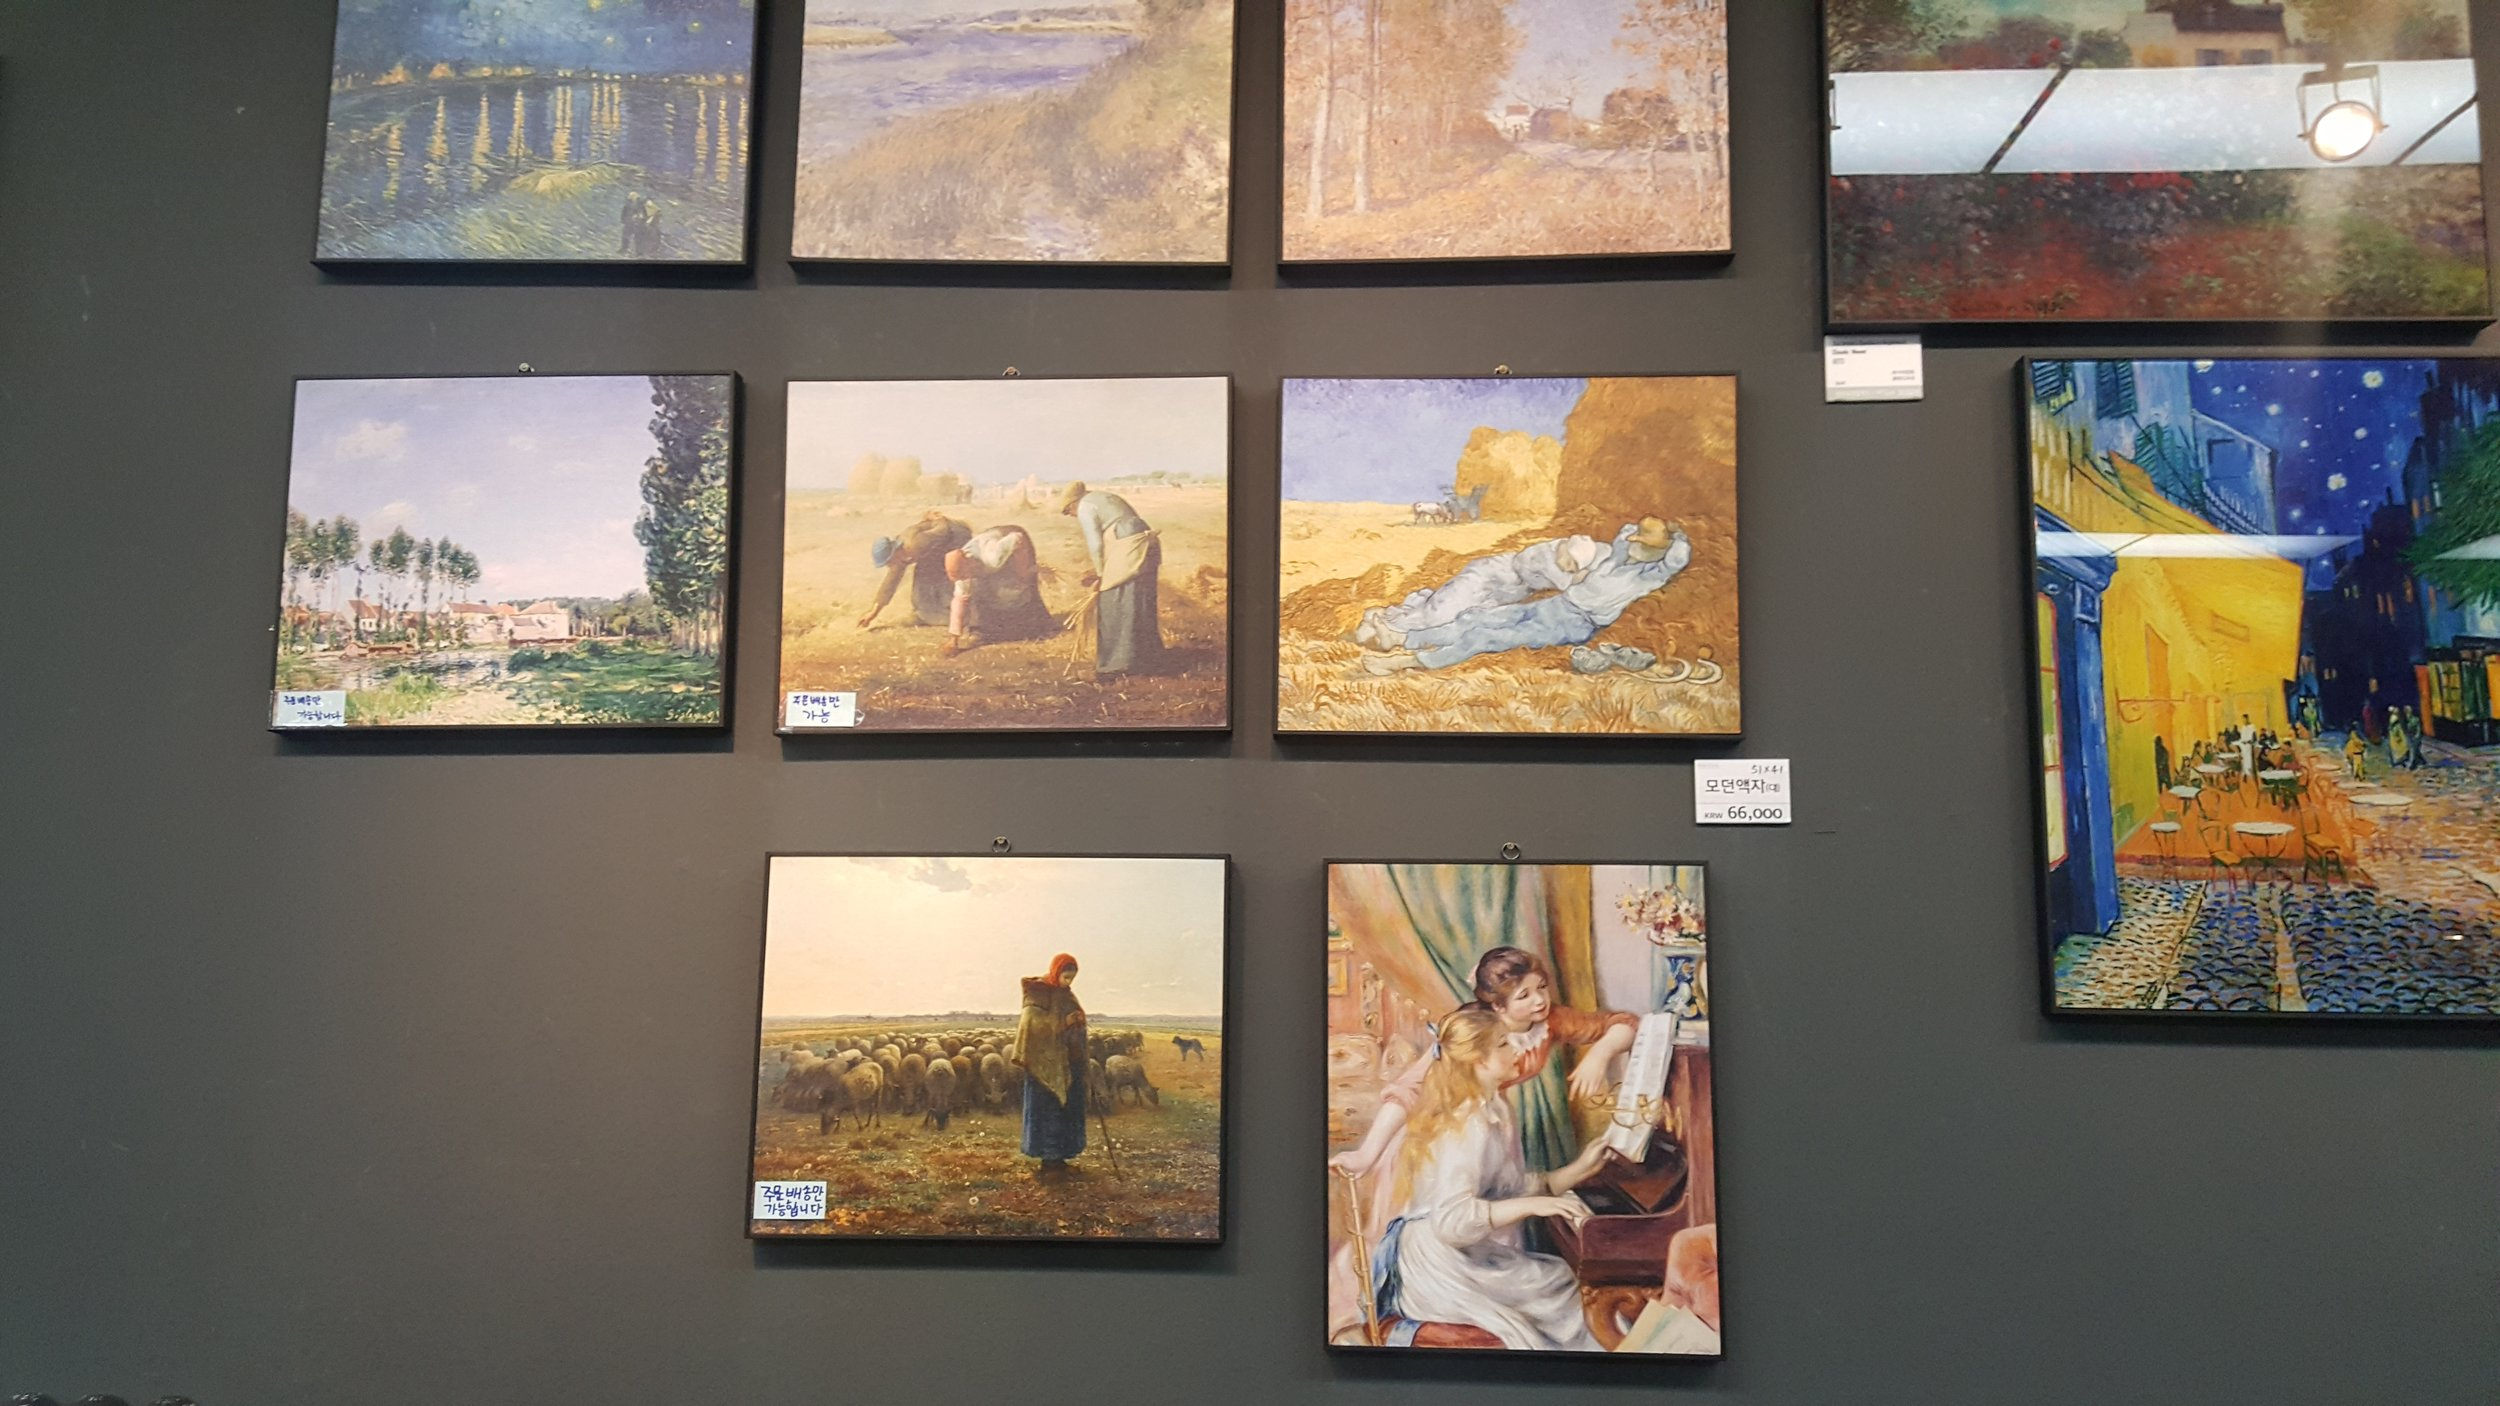 prints of the artworks included in the exhibition.